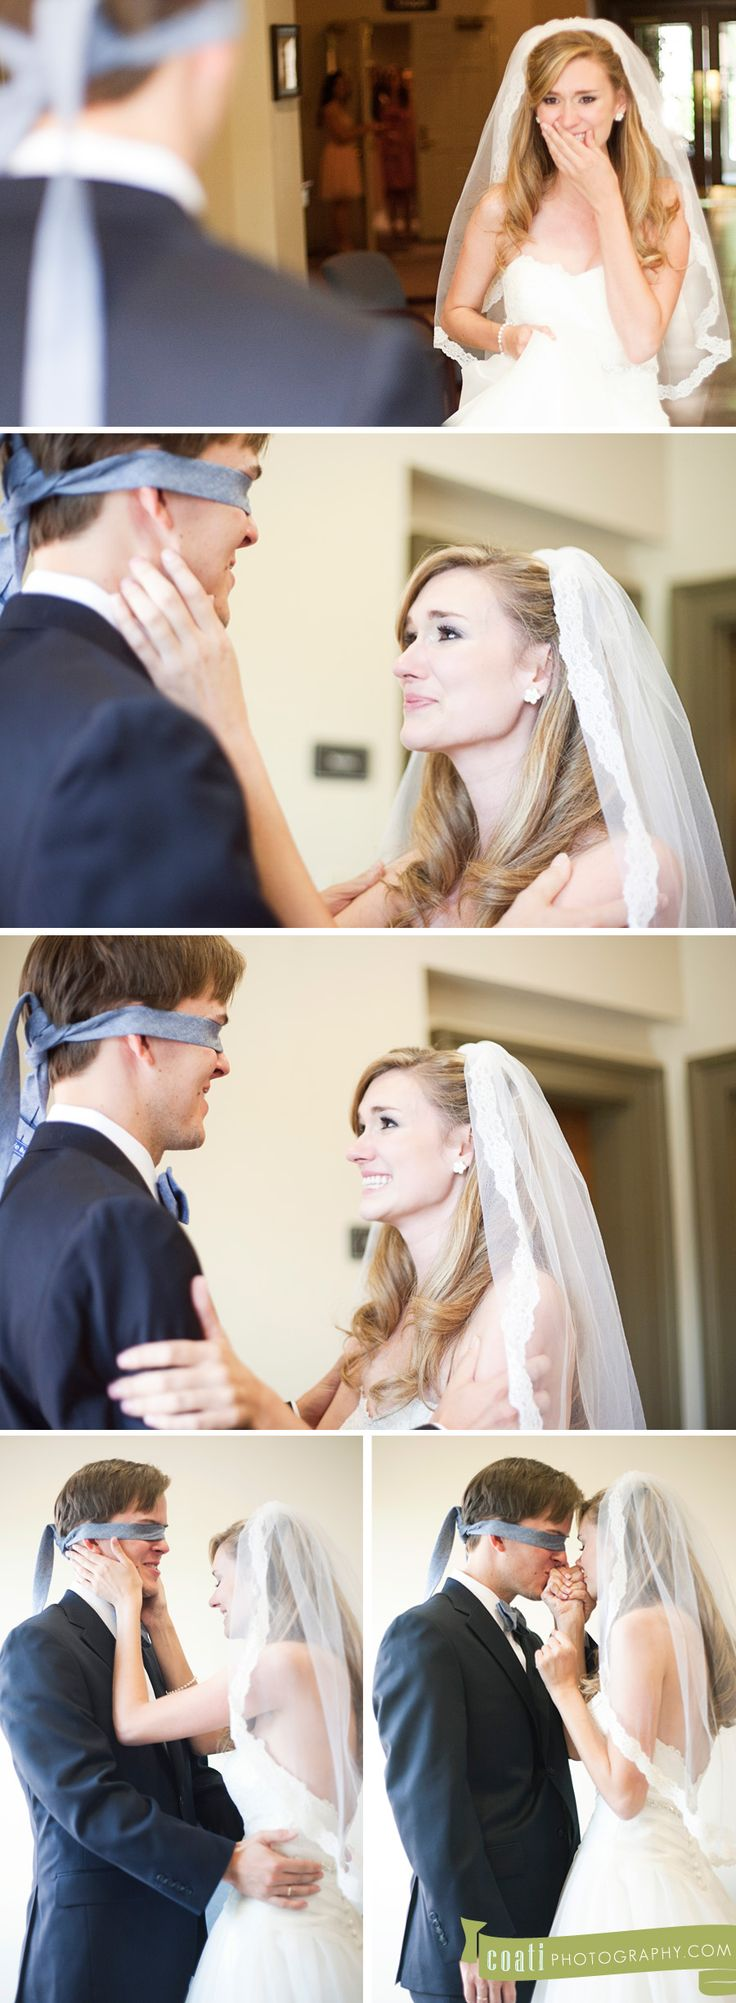 "See the groom without breaking the ""groom shouldn't see the bride before the wedding"" rule!: Photo Ideas, Cute Ideas, Wedding Photos, Pictures, Wedding Rules, The Bride, Hair, The Rules, Grooms"